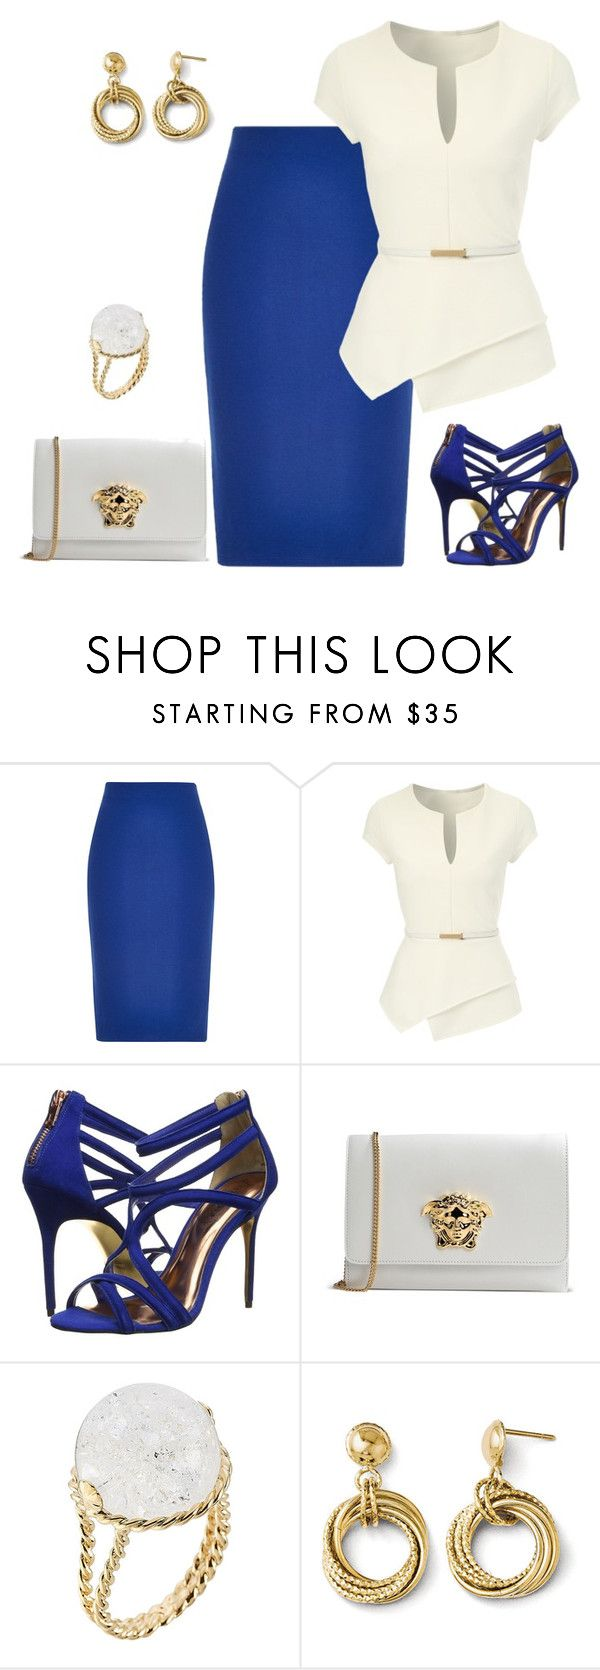 """""""outfit 2454"""" by natalyag ❤ liked on Polyvore featuring River Island, Jane Norman, Ted Baker, Versace and Aurélie Bidermann"""